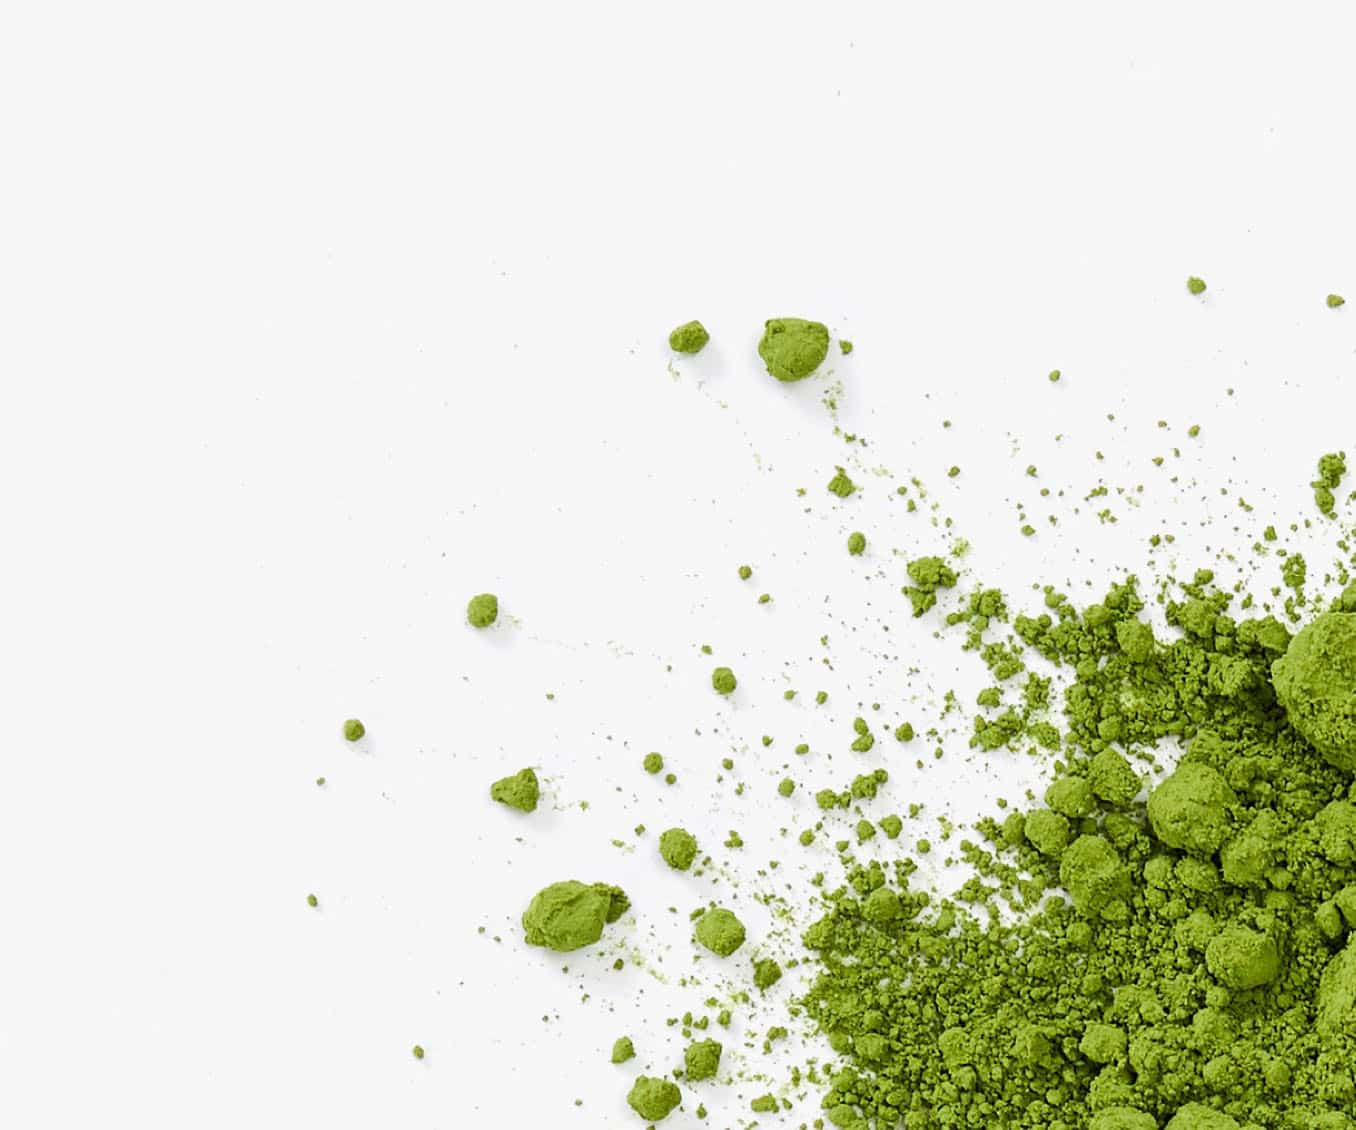 Loose leaf matcha powder placed in the bottom right corner on a white background.